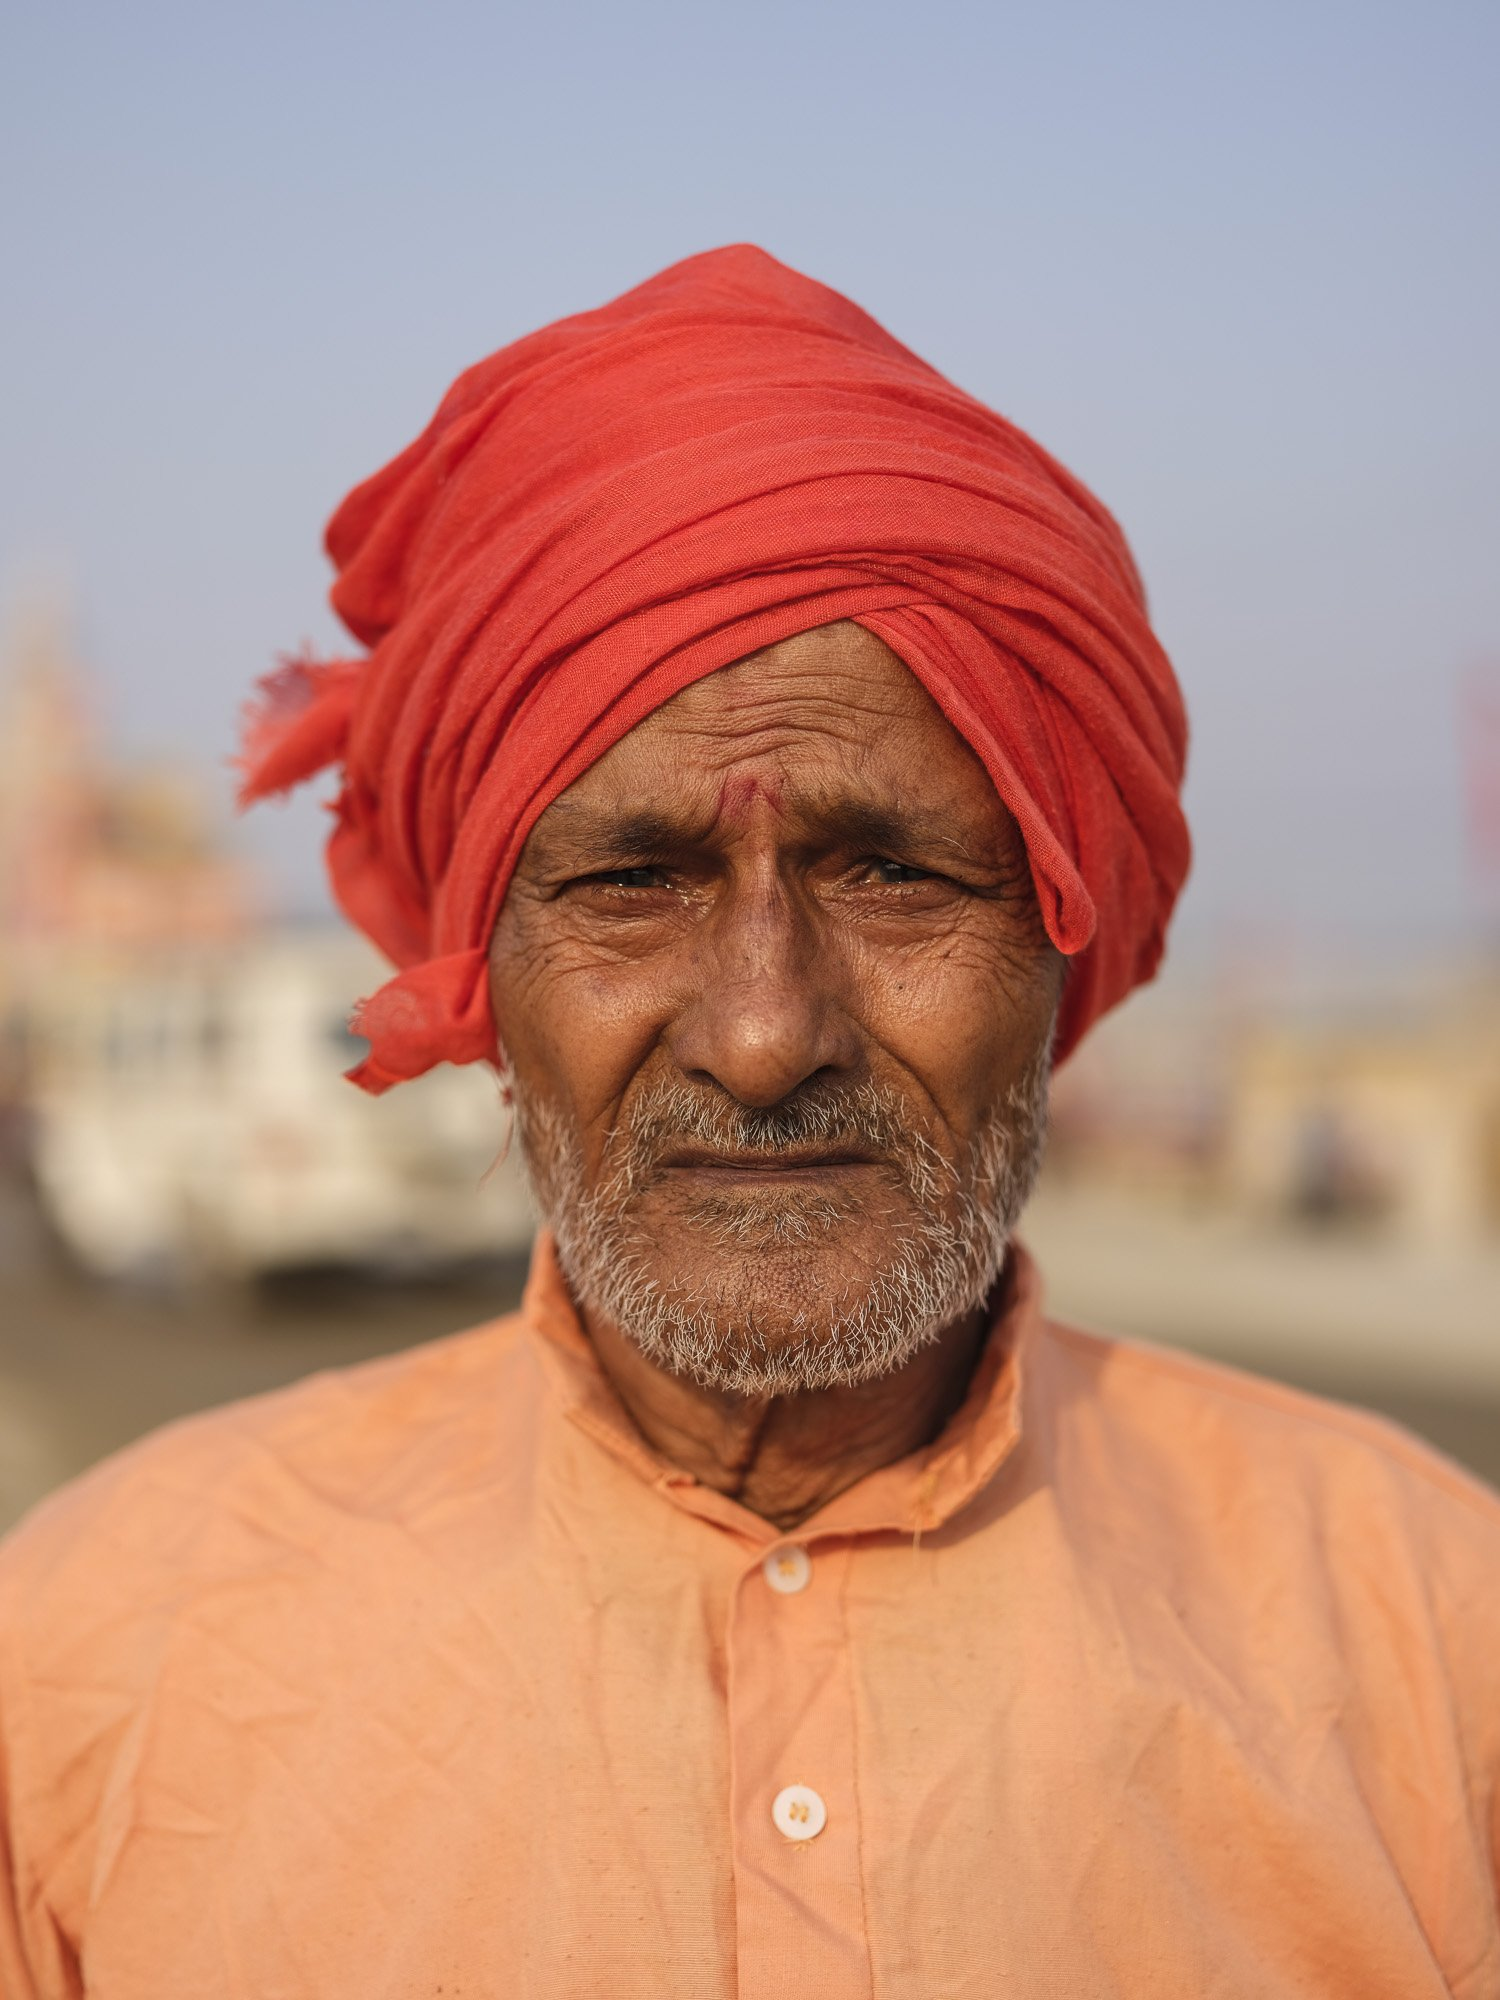 sunset portrait pilgrims Kumbh mela 2019 India Allahabad Prayagraj Ardh hindu religious Festival event rivers photographer jose jeuland photography